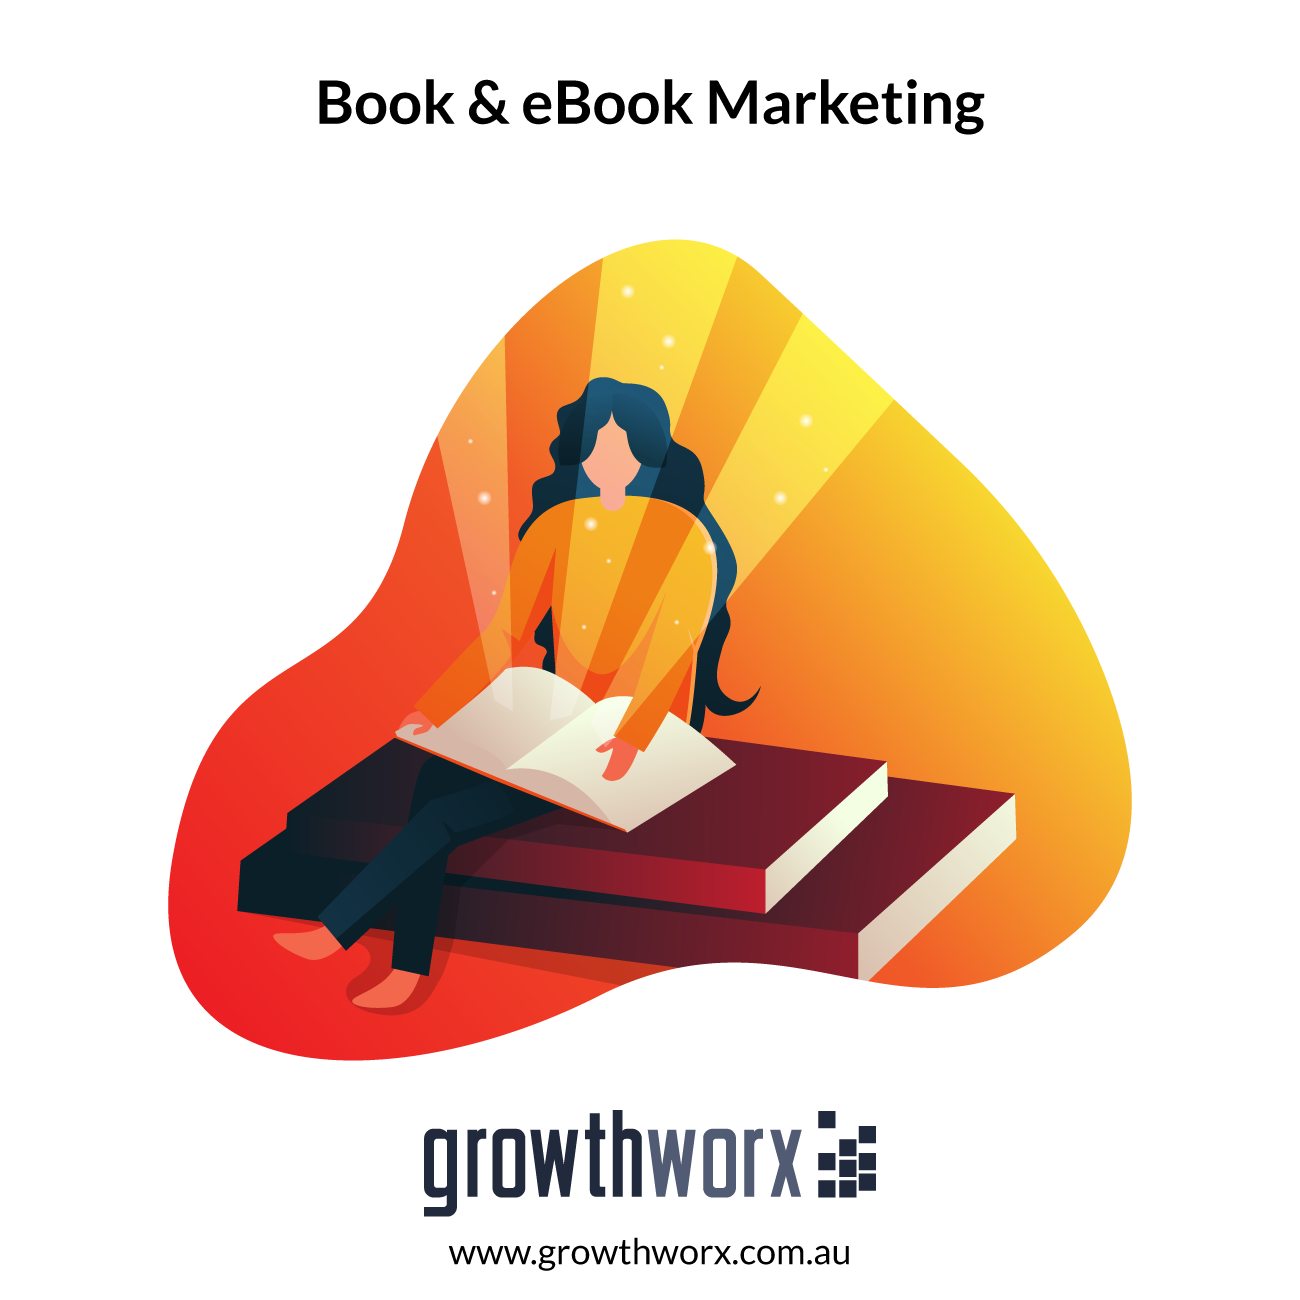 I will advertise and promote your ebook or book to 2 million readers 1